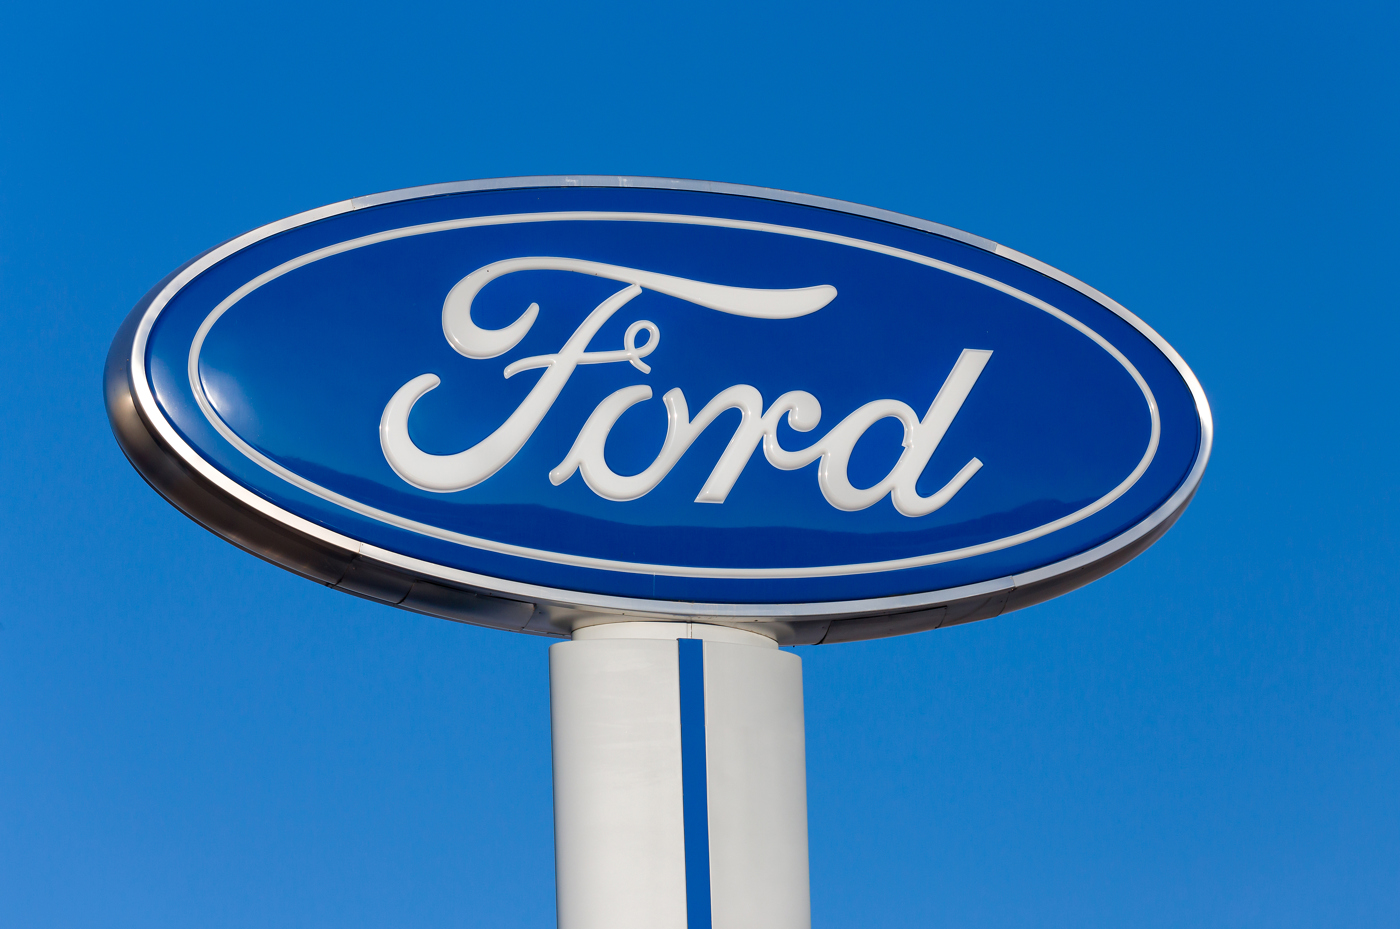 Ford stock, F stock, automobile stocks, car stocks